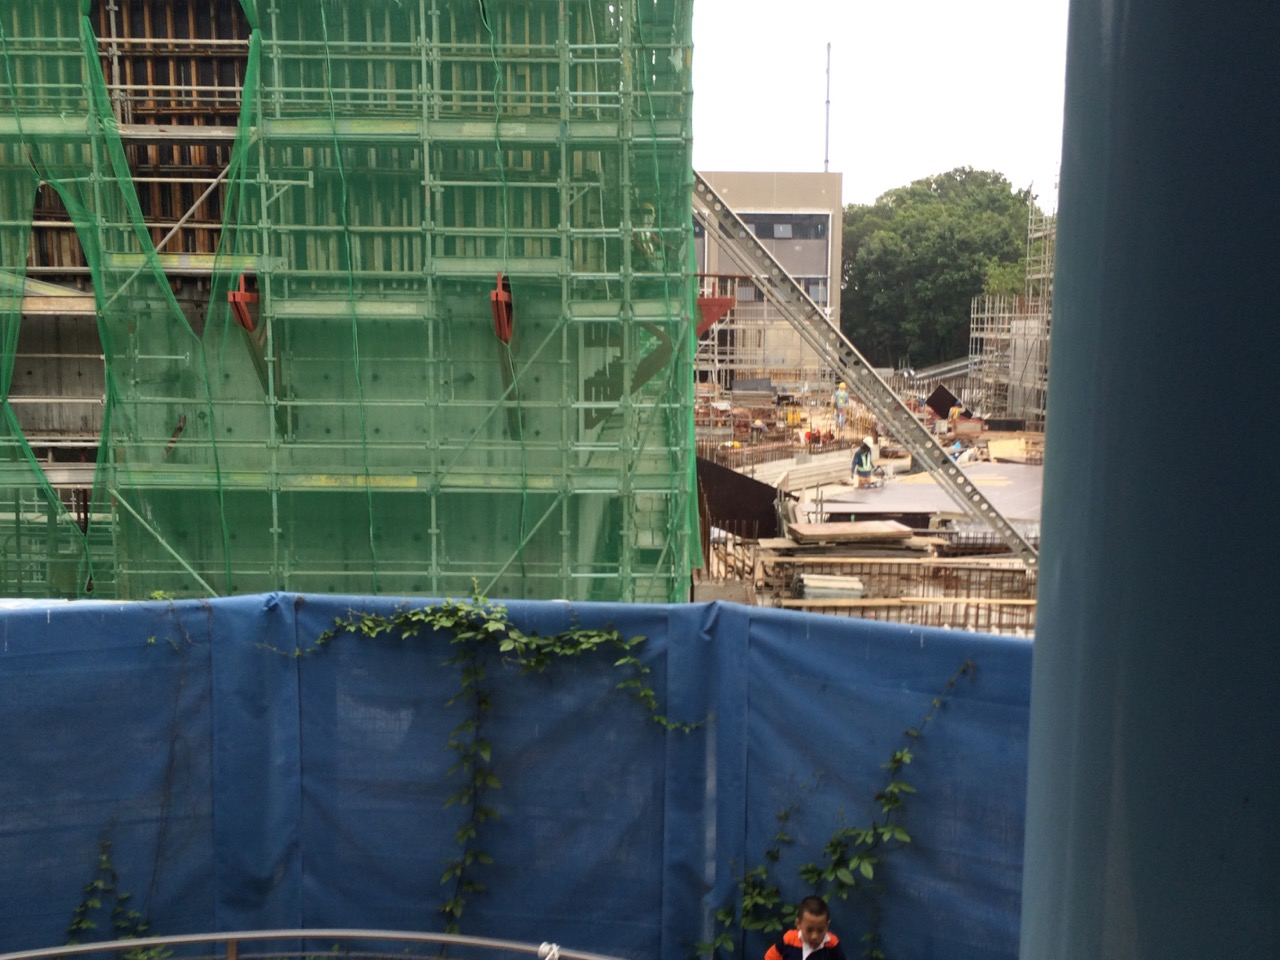 The Iron Man Ride under construction at Hong Kong Disneyland. Will it be enough to increase attendance dramatically. Photo by J. Jeff Kober.